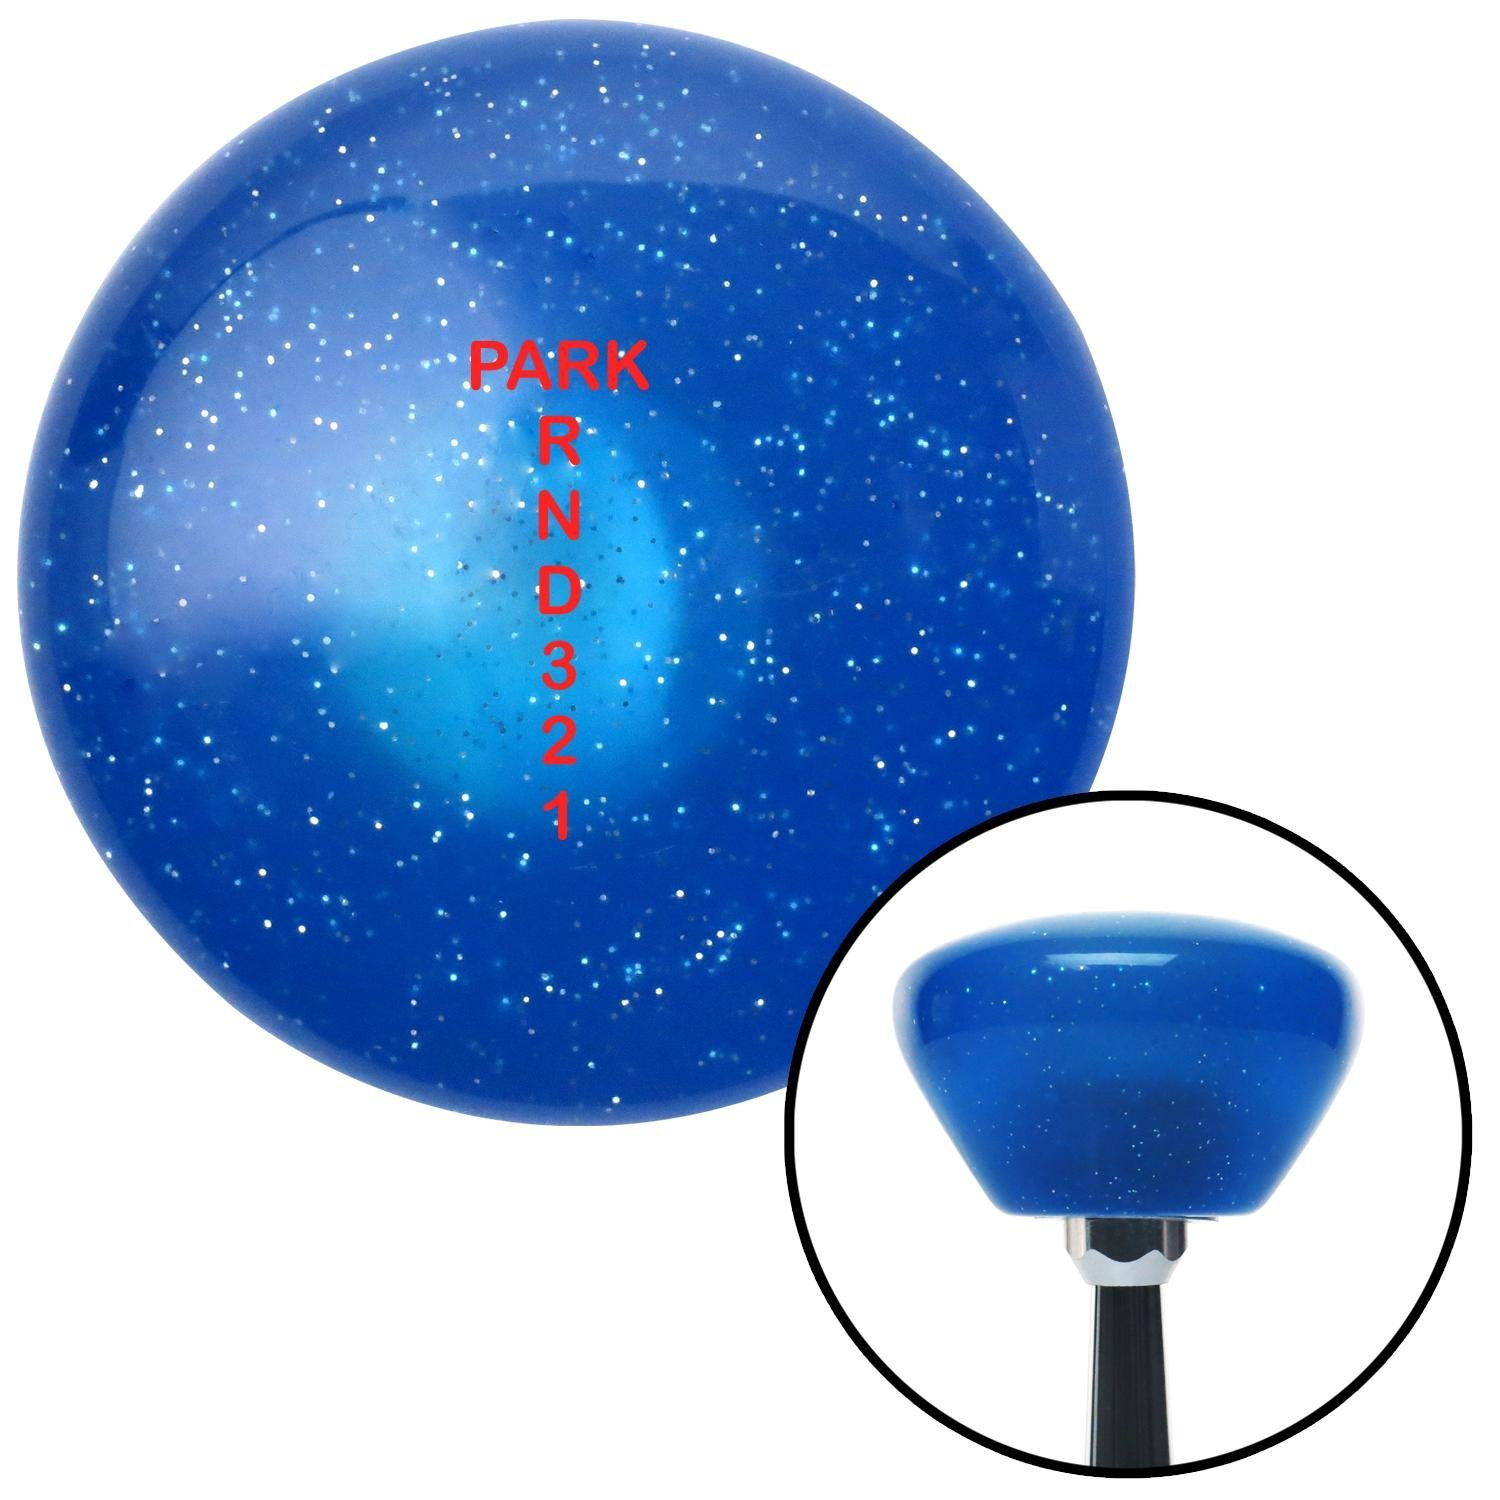 American Shifter 192129 Blue Retro Metal Flake Shift Knob with M16 x 1.5 Insert Red Shift Pattern 63n